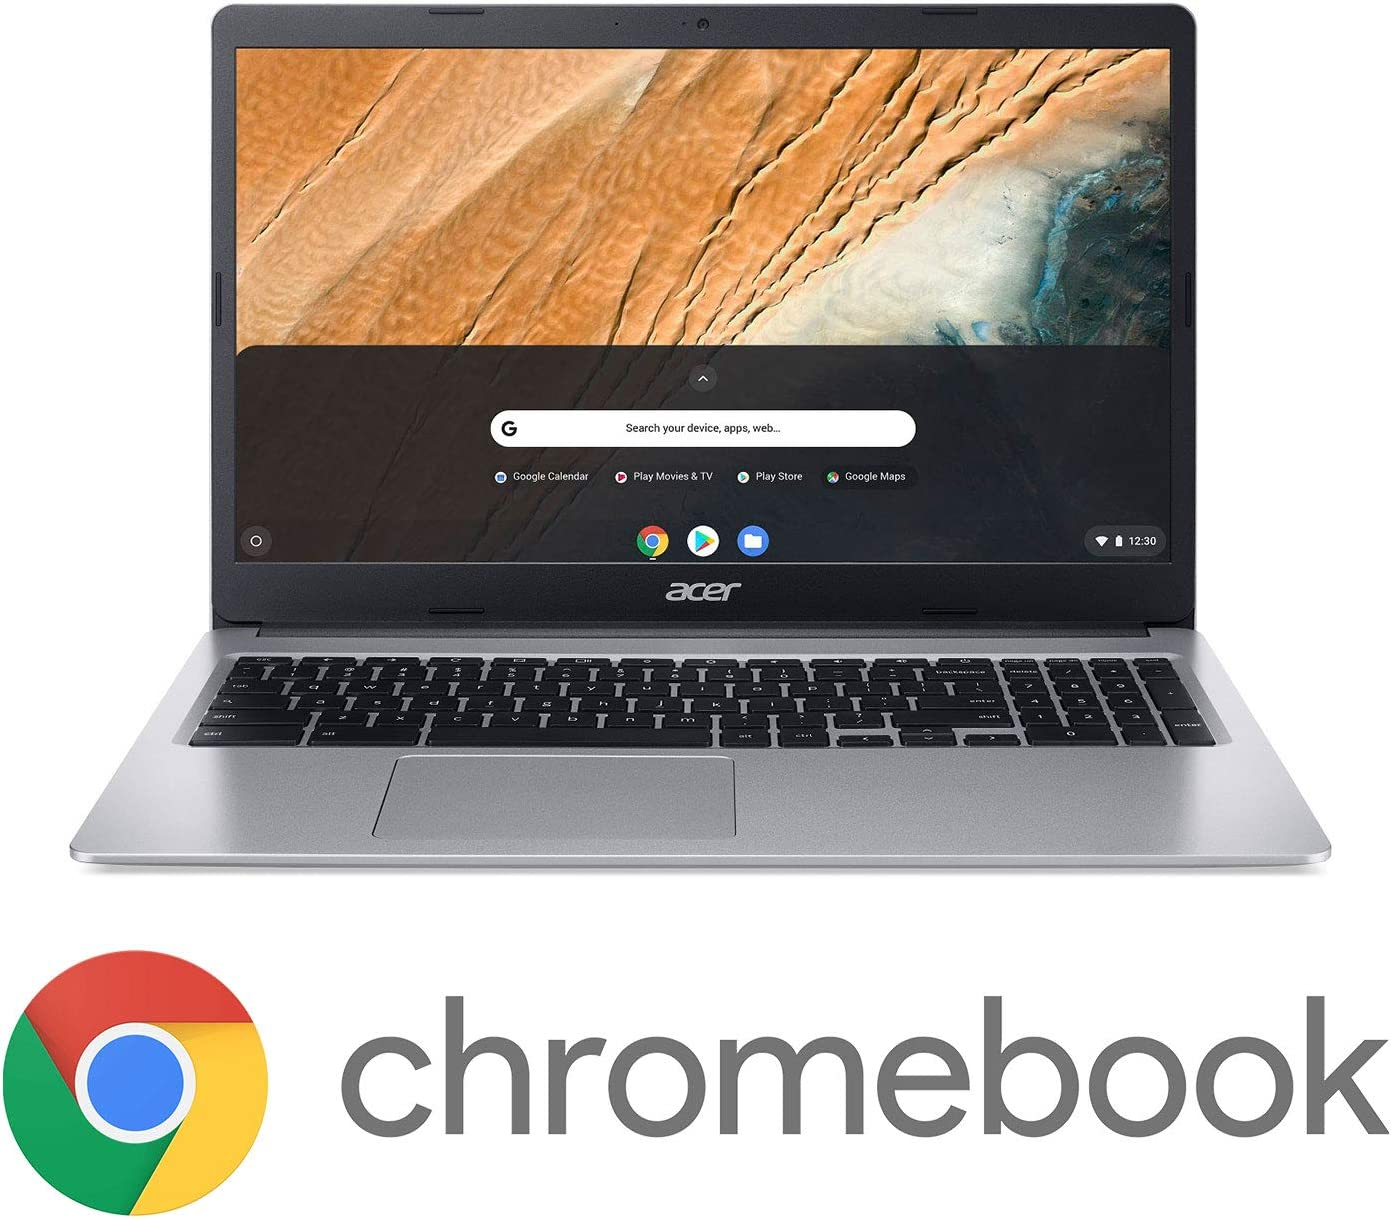 "Acer Chromebook 315, Intel Celeron N4000, 15.6"" Full HD IPS Touch Display, 4GB LPDDR4, 32GB eMMC, Gigabit WiFi, Google Chrome, CB315-3HT-C296"